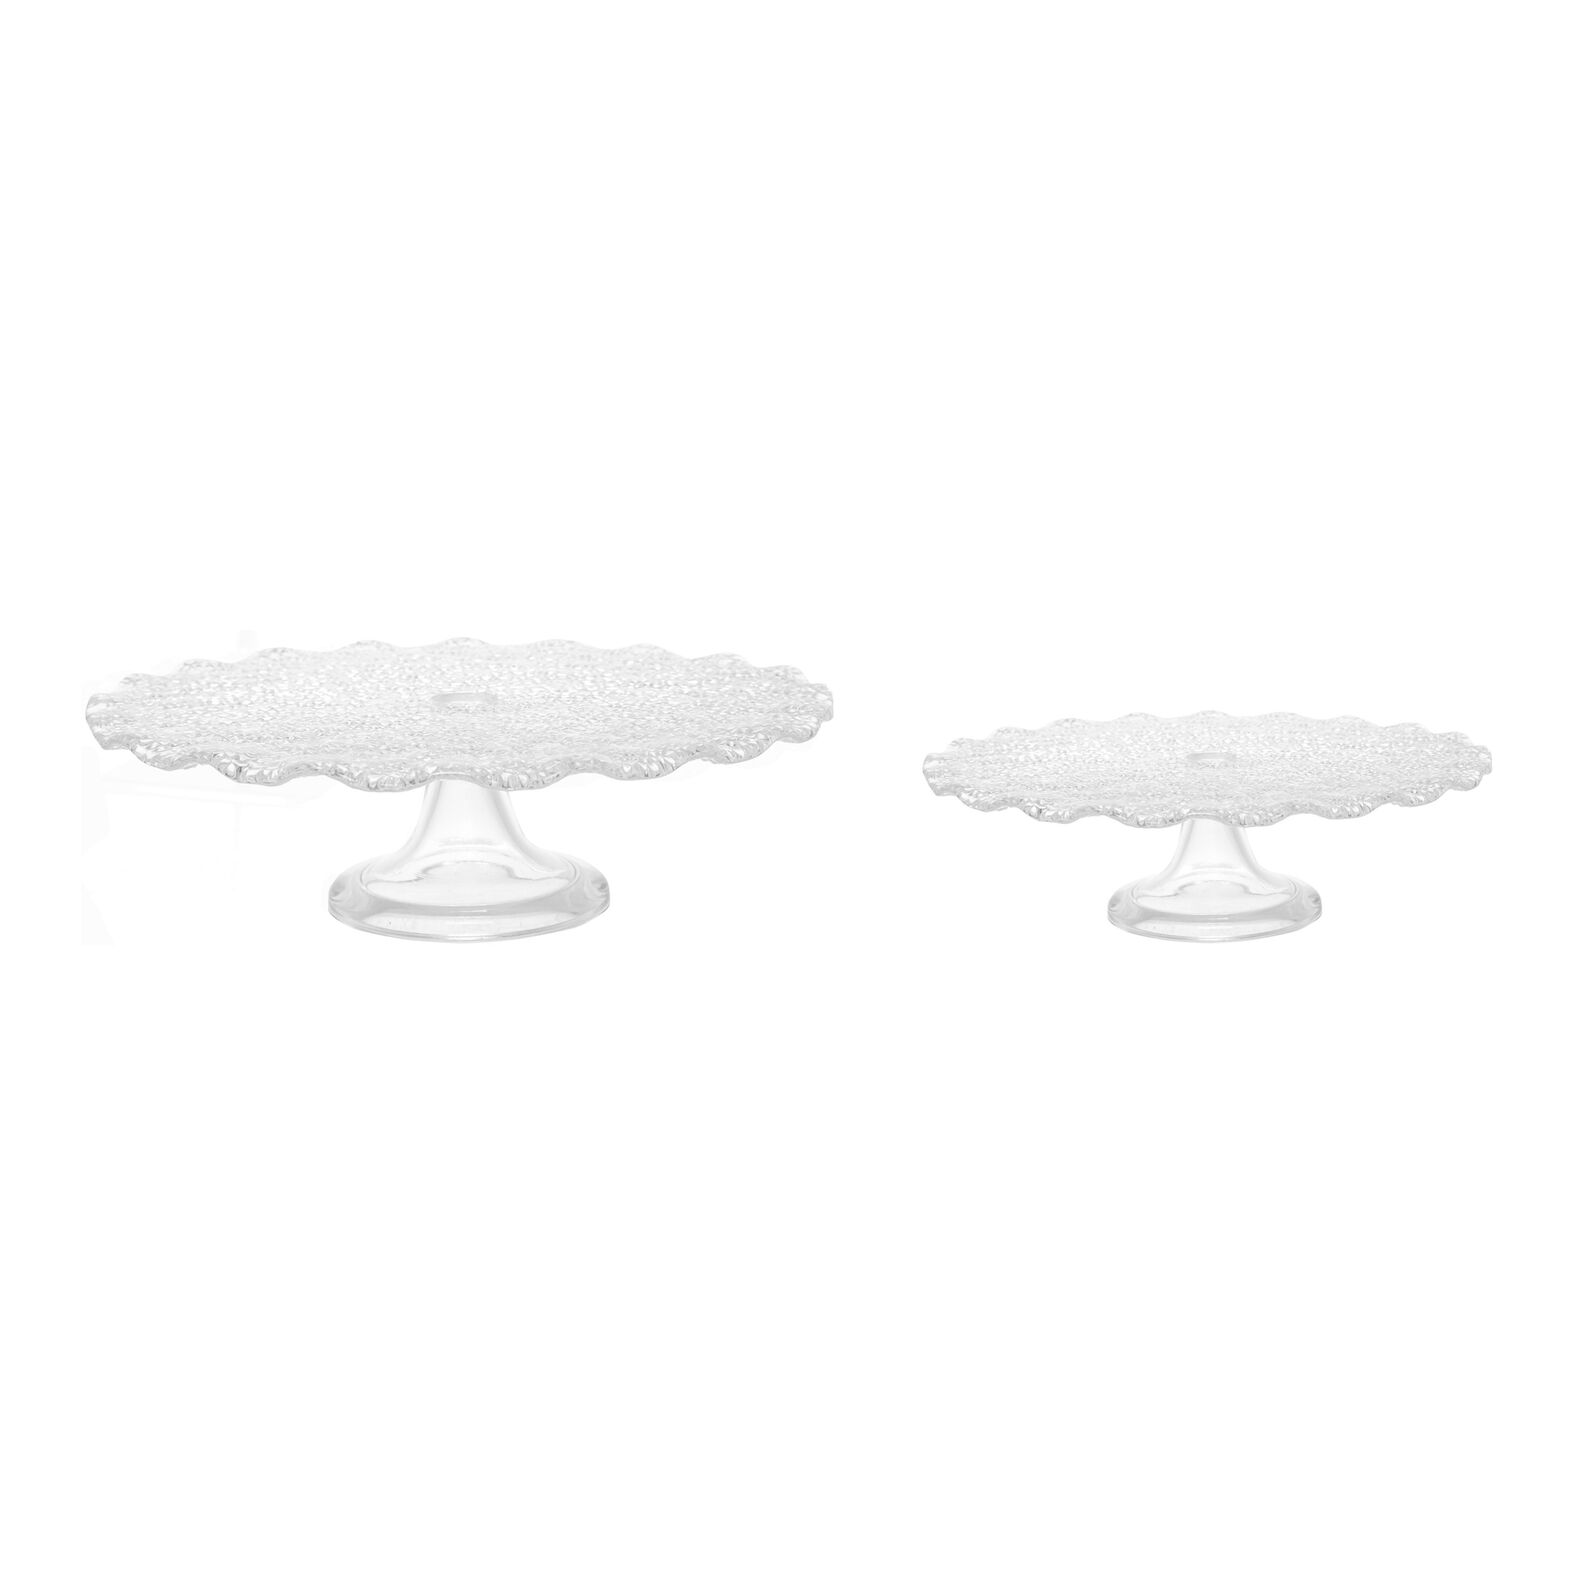 Lvv scalloped glass cake stand